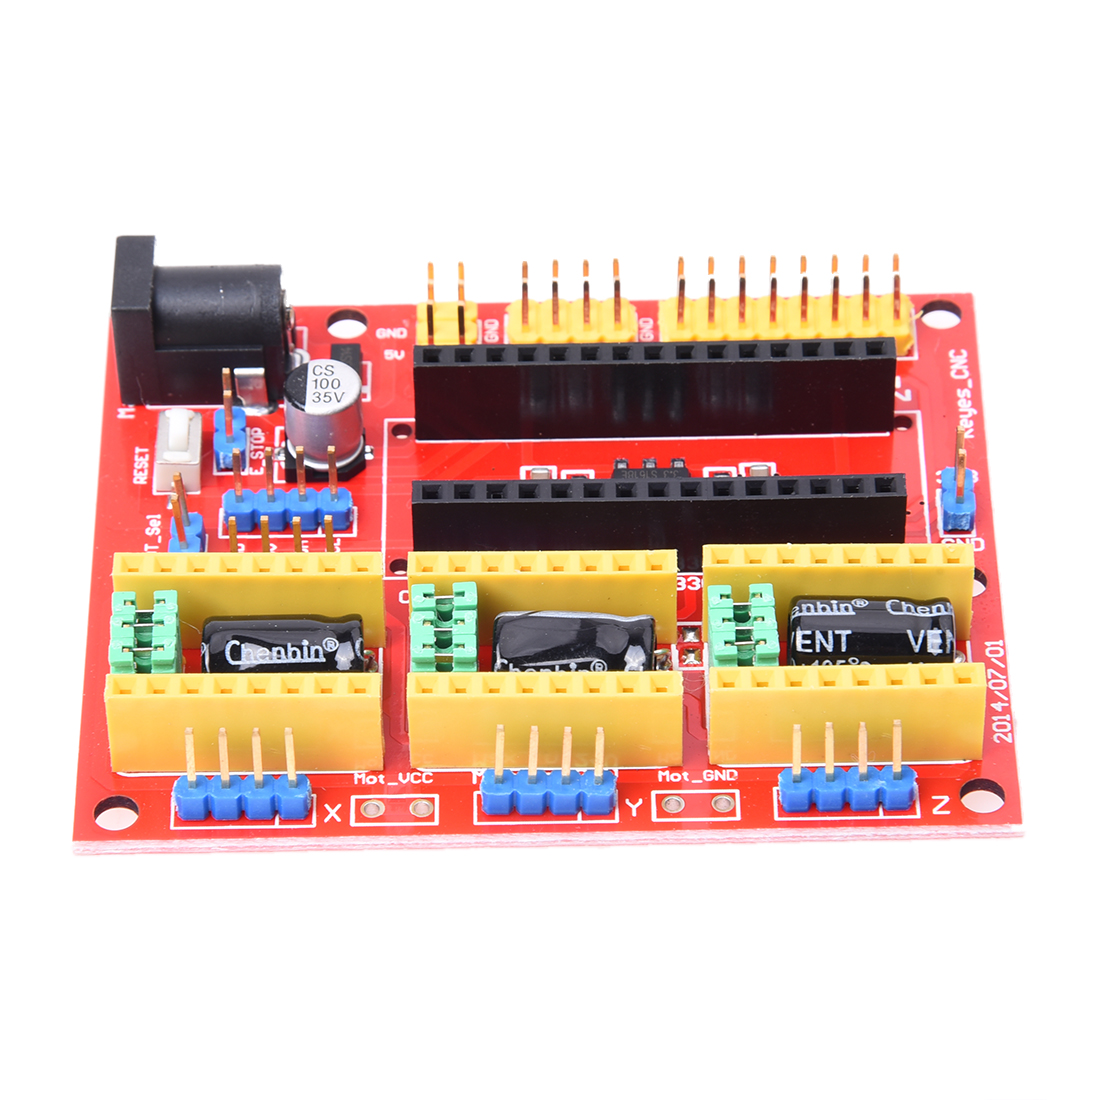 1 x Red CCL CNC V4 engraving machine expansion board For Arduino GRBL hf 3dv3 cnc v3 expansion module red